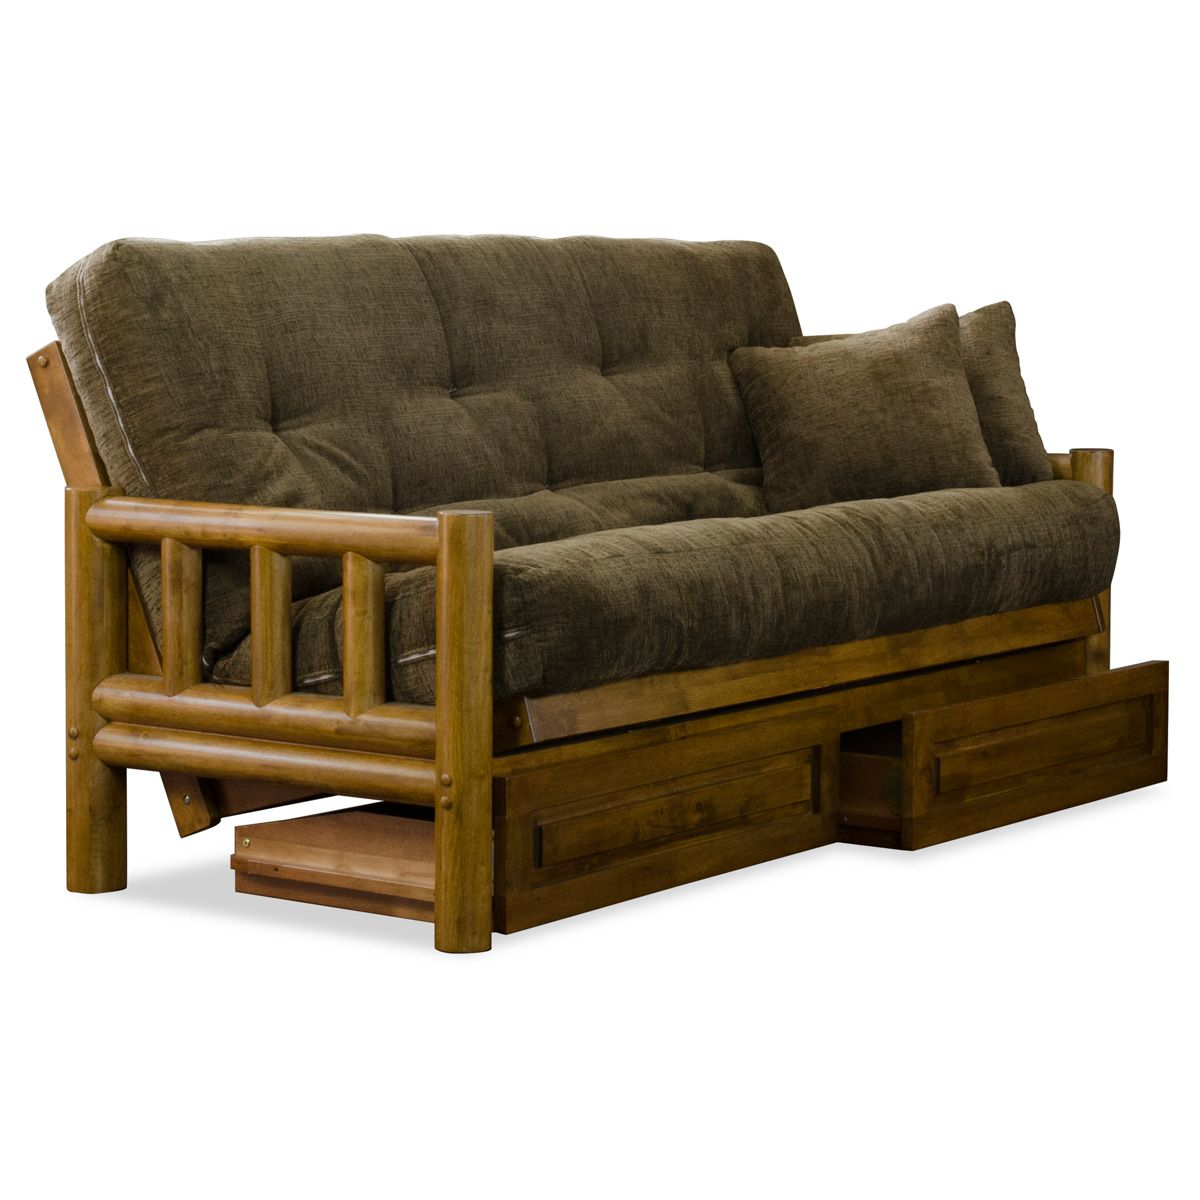 Found It At Www Futoncreations Com Tahoe Log Futon Set Heritage Designer Mattress Made In Usa